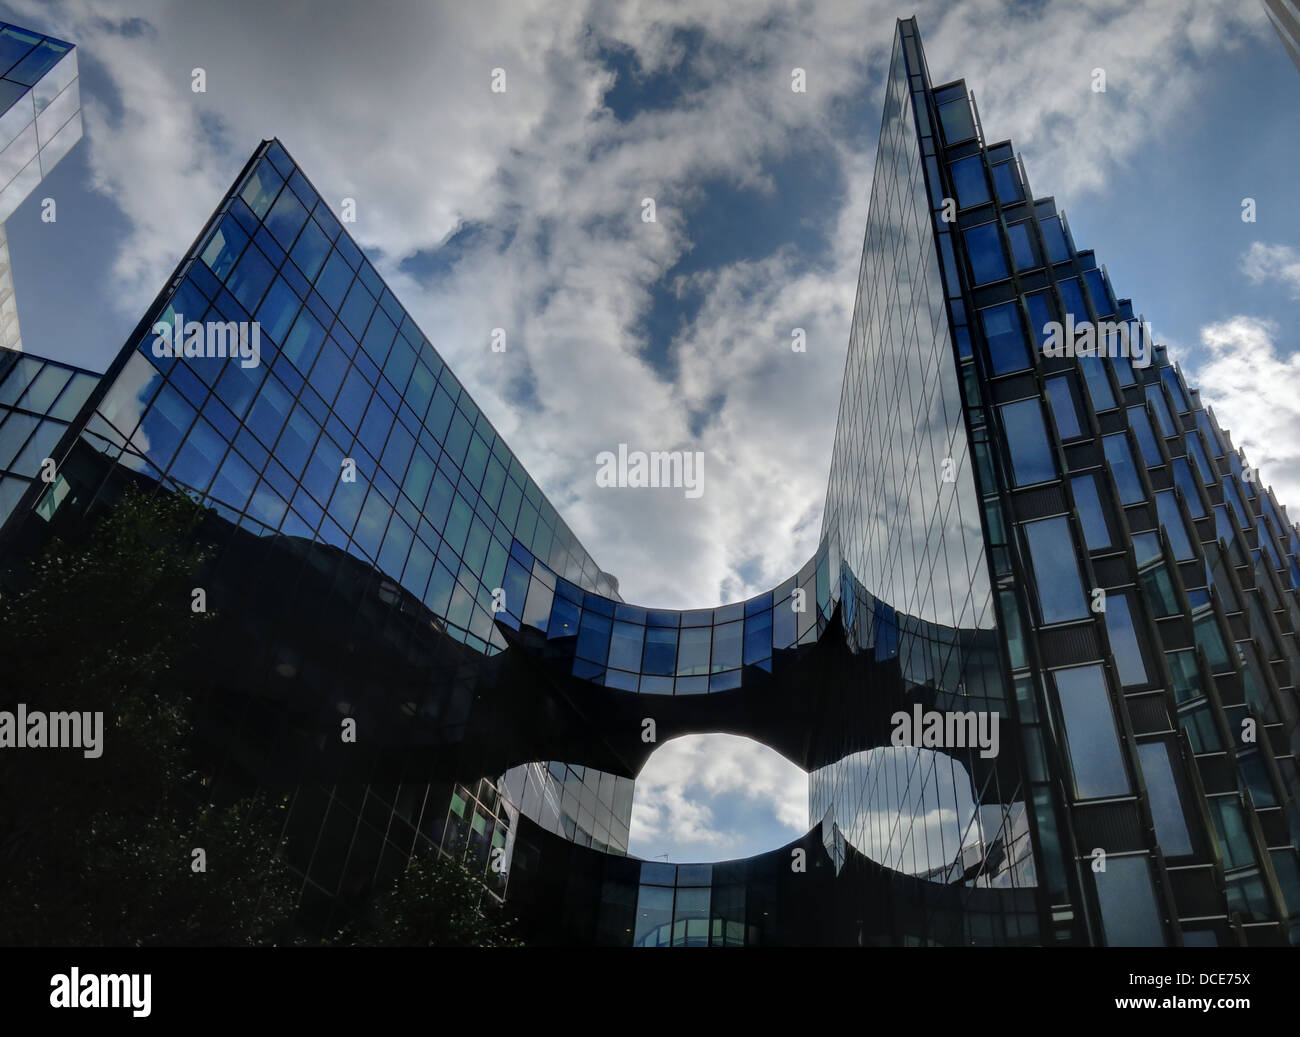 buildings,architecture,architect,greener,green,glass,space,sensor,ESCUBE,Breeam,Outstanding',rating,for,particularly,sustainable,technical,building,design,Bridge,and,City,Hall,with,cloud,reflections.,Gotonysmith,Buy Pictures of,Buy Images Of